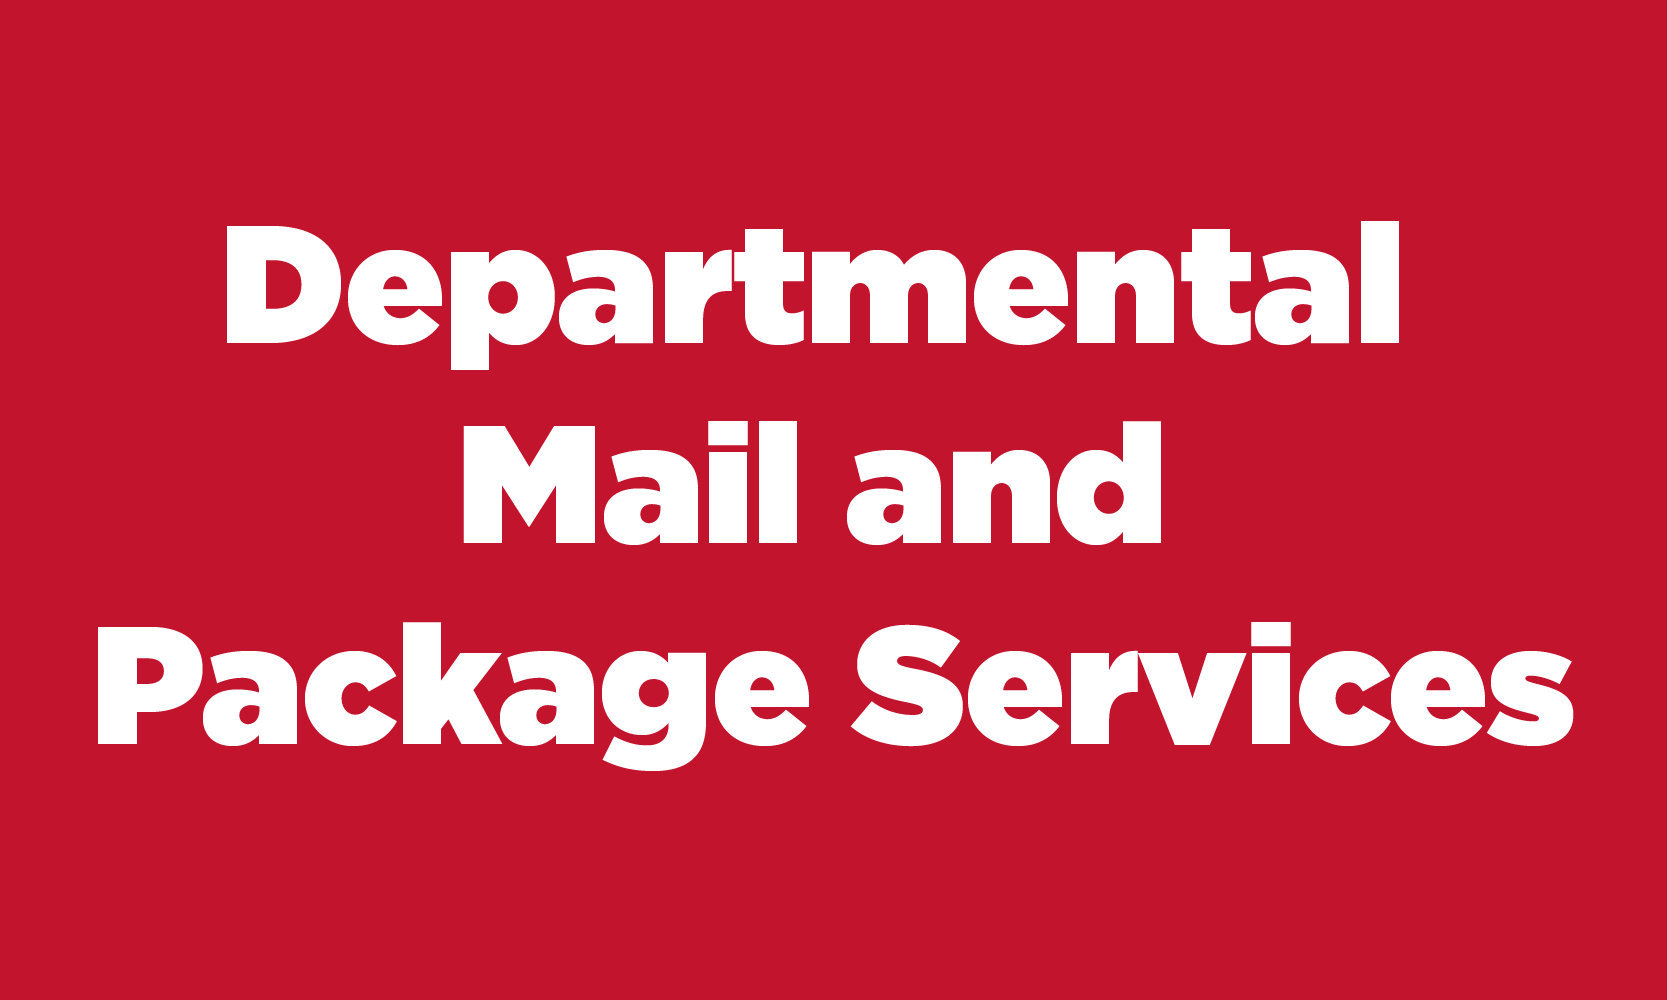 Departmental Mail and Package Services